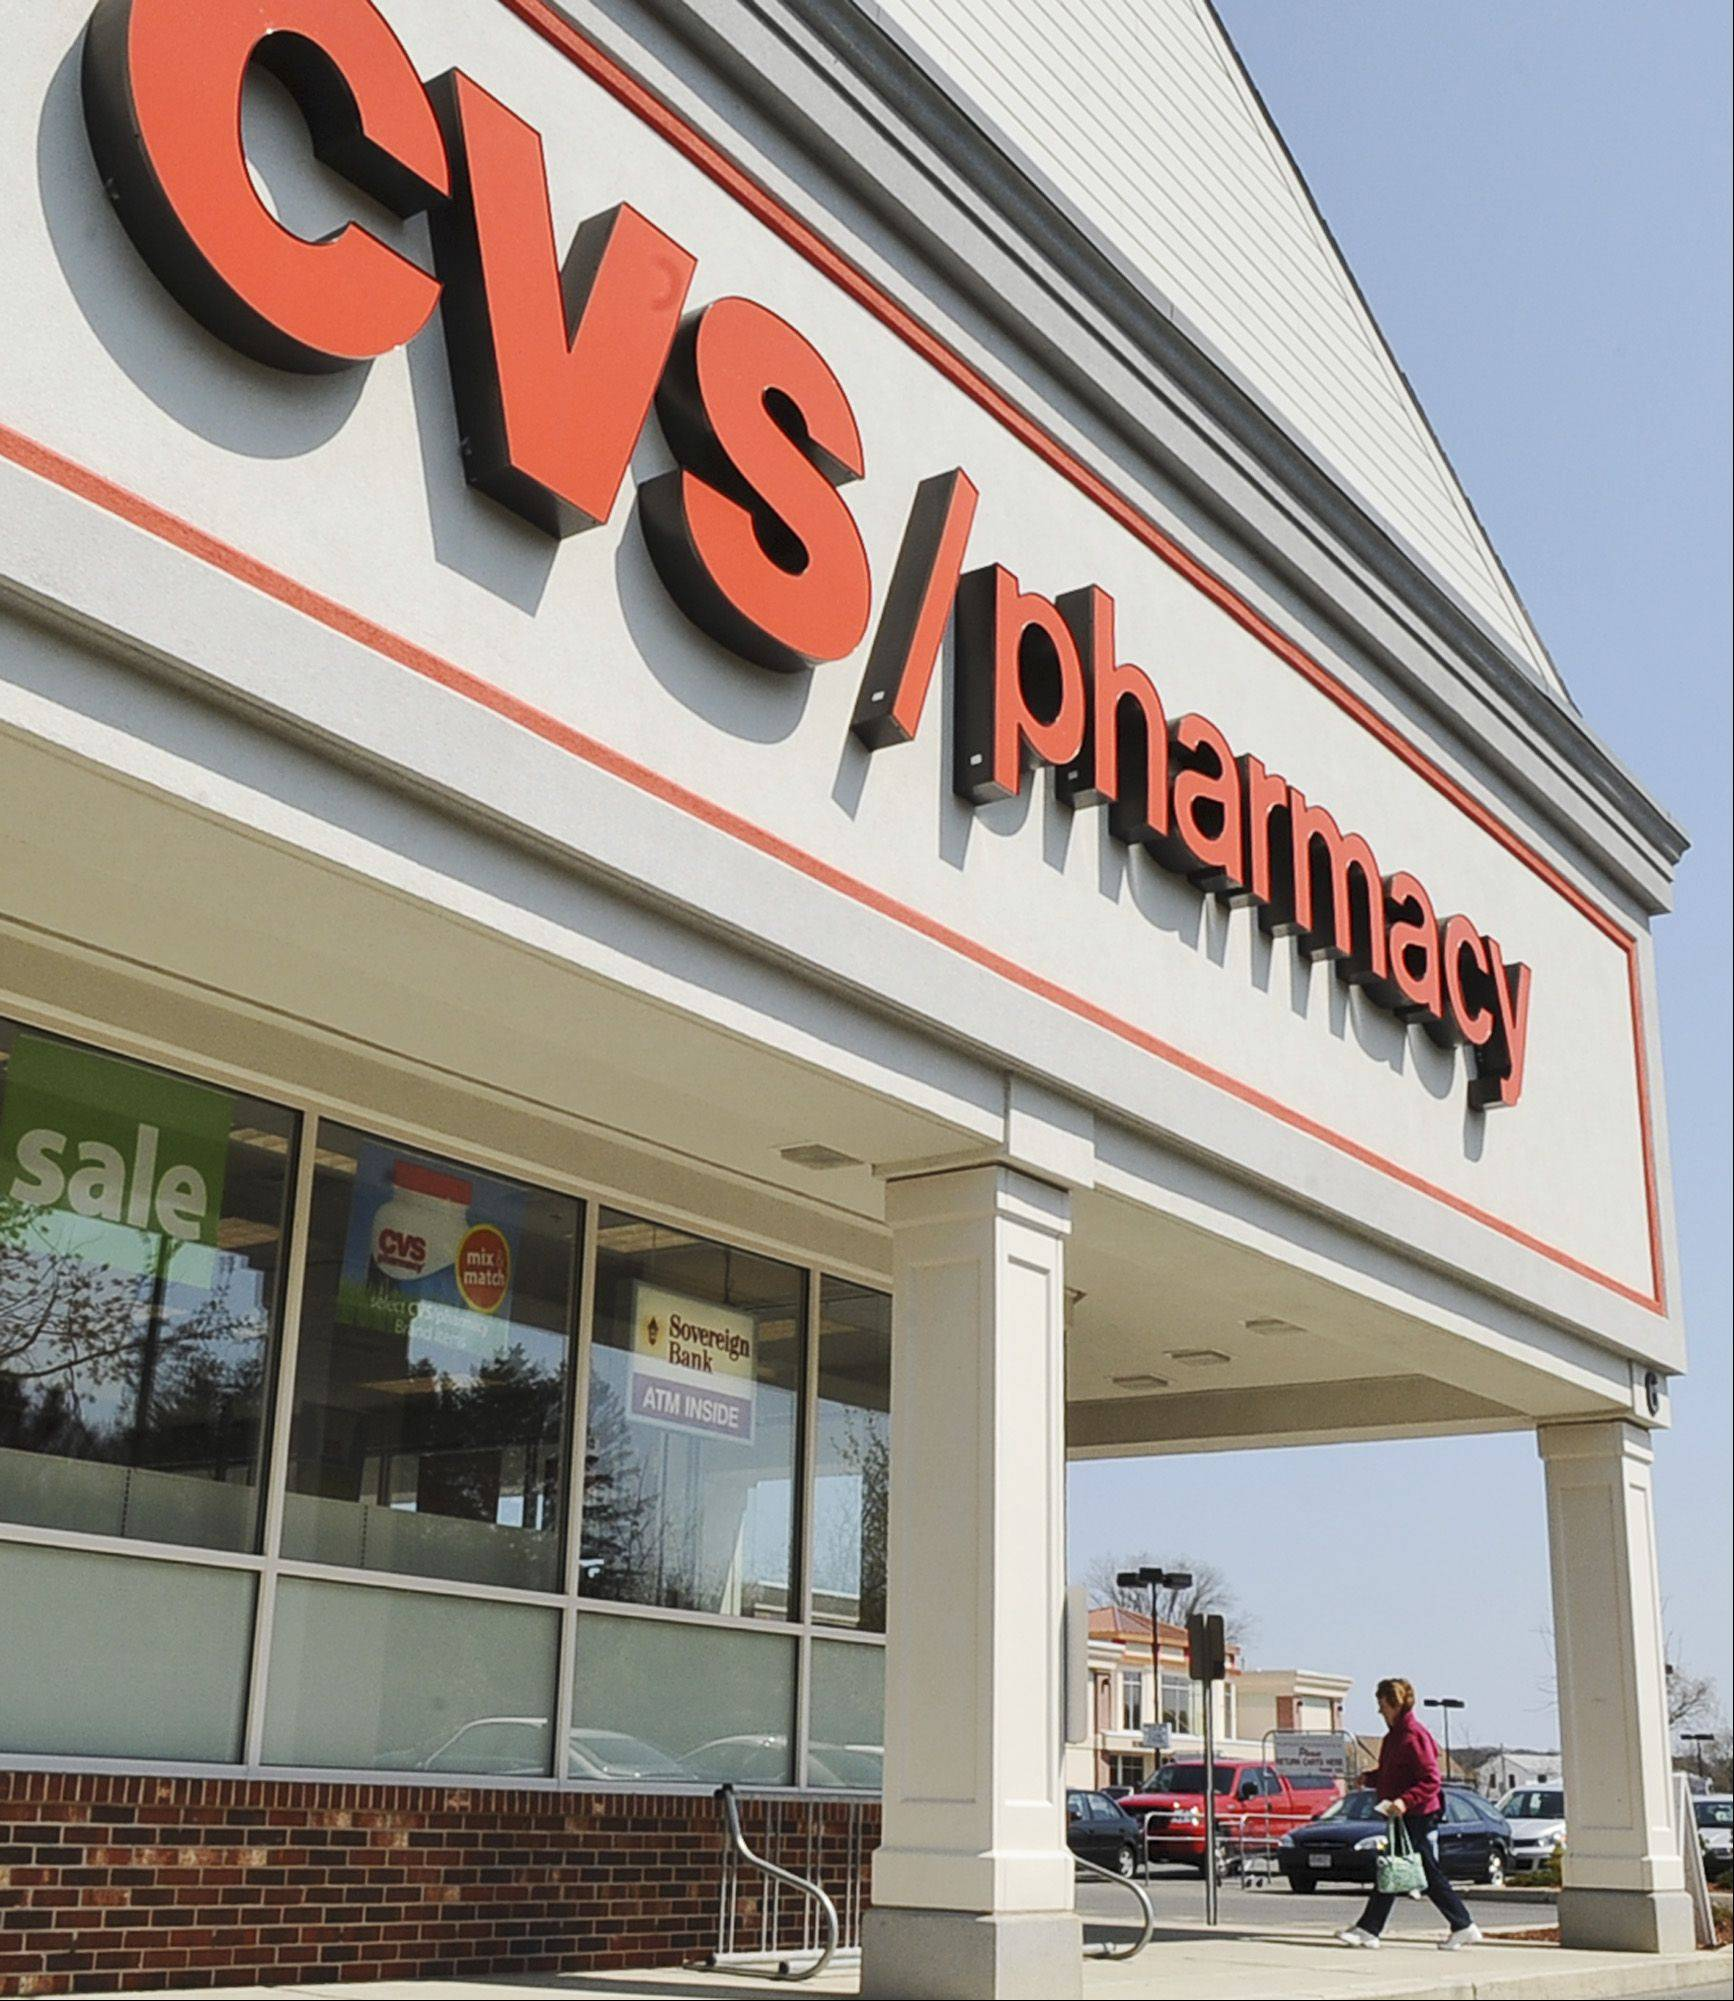 The Federal Trade Commission said that it is mailing refund checks to 13,000 Medicare Part D beneficiaries who were overcharged for drugs because a CVS Caremark Corp. business understated the price of the medications.